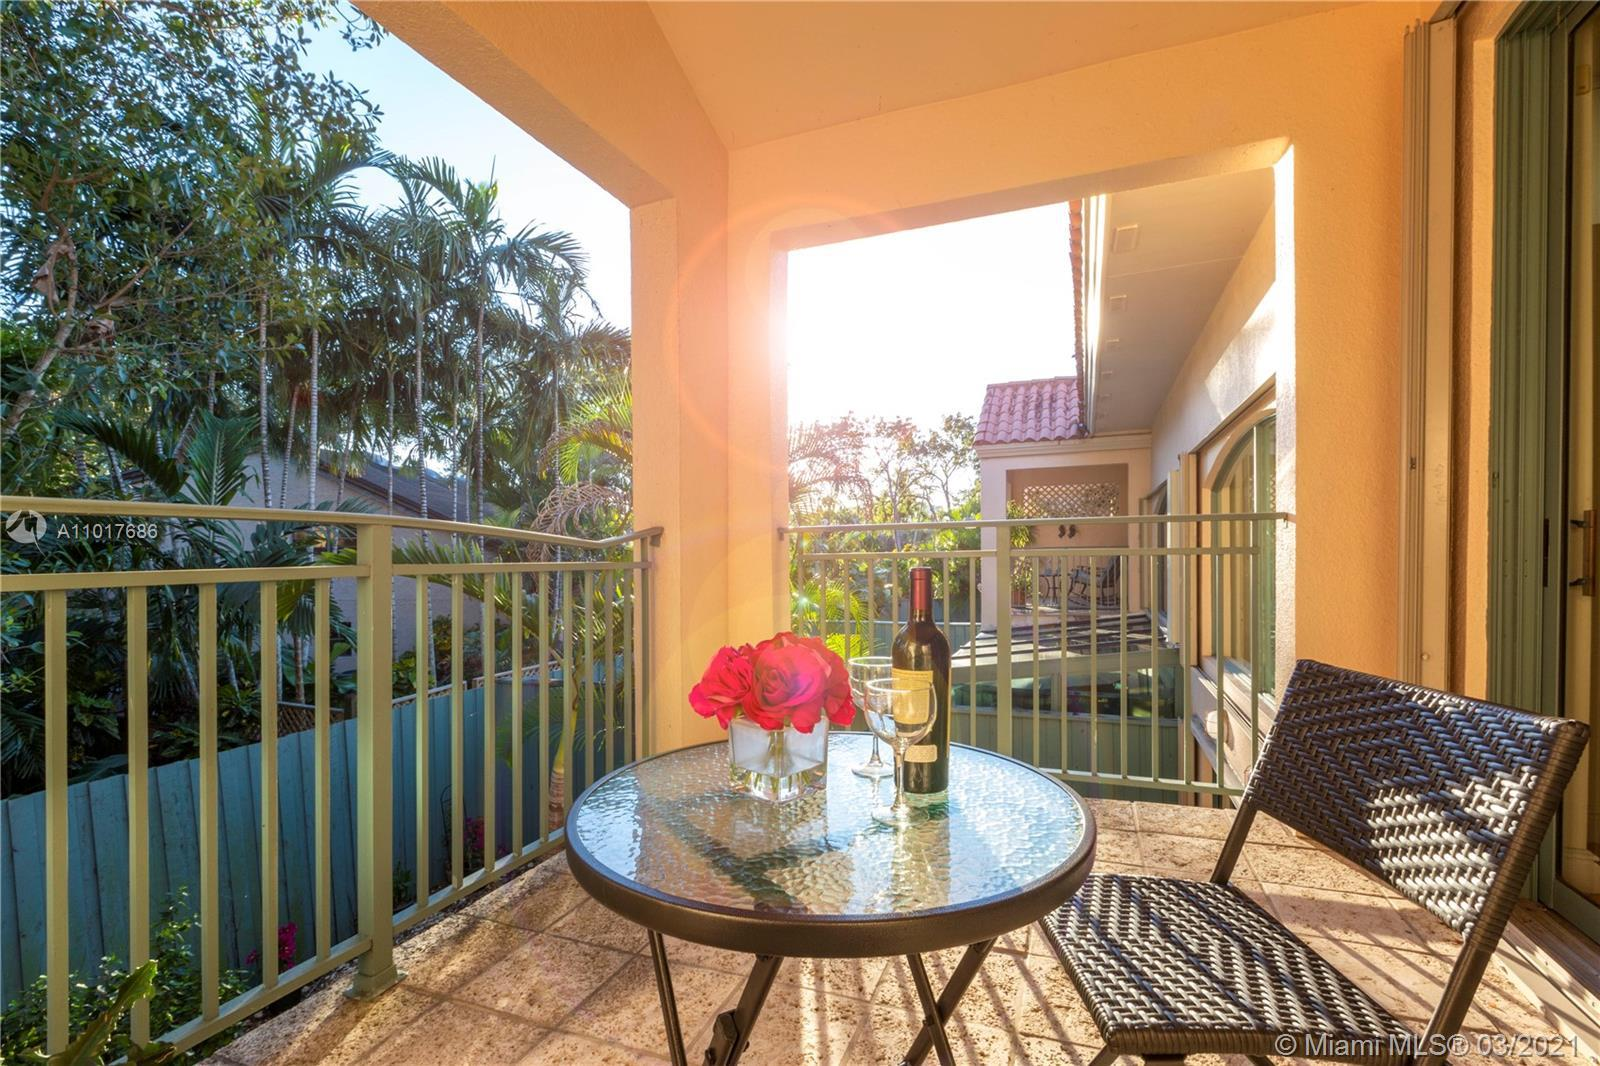 Remarkable and spacious two story, 4-bedroom 3-bath townhouse in Pinecrest exclusive Swan Lake. Huge